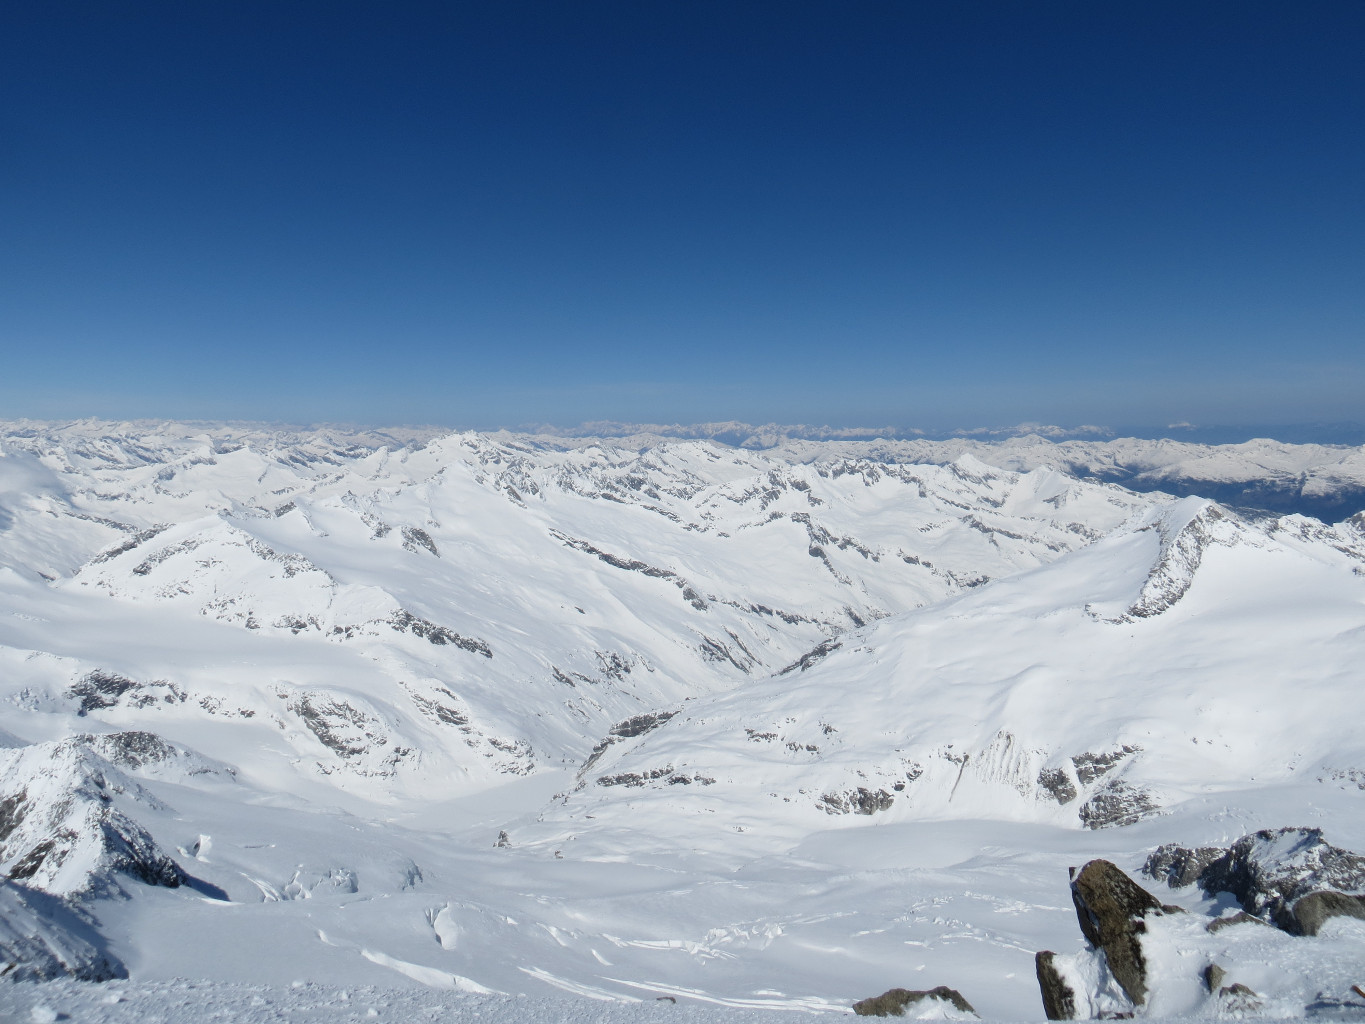 Looking N from the summit. Kuerssinger huette in the middle, Kesskogel on the R